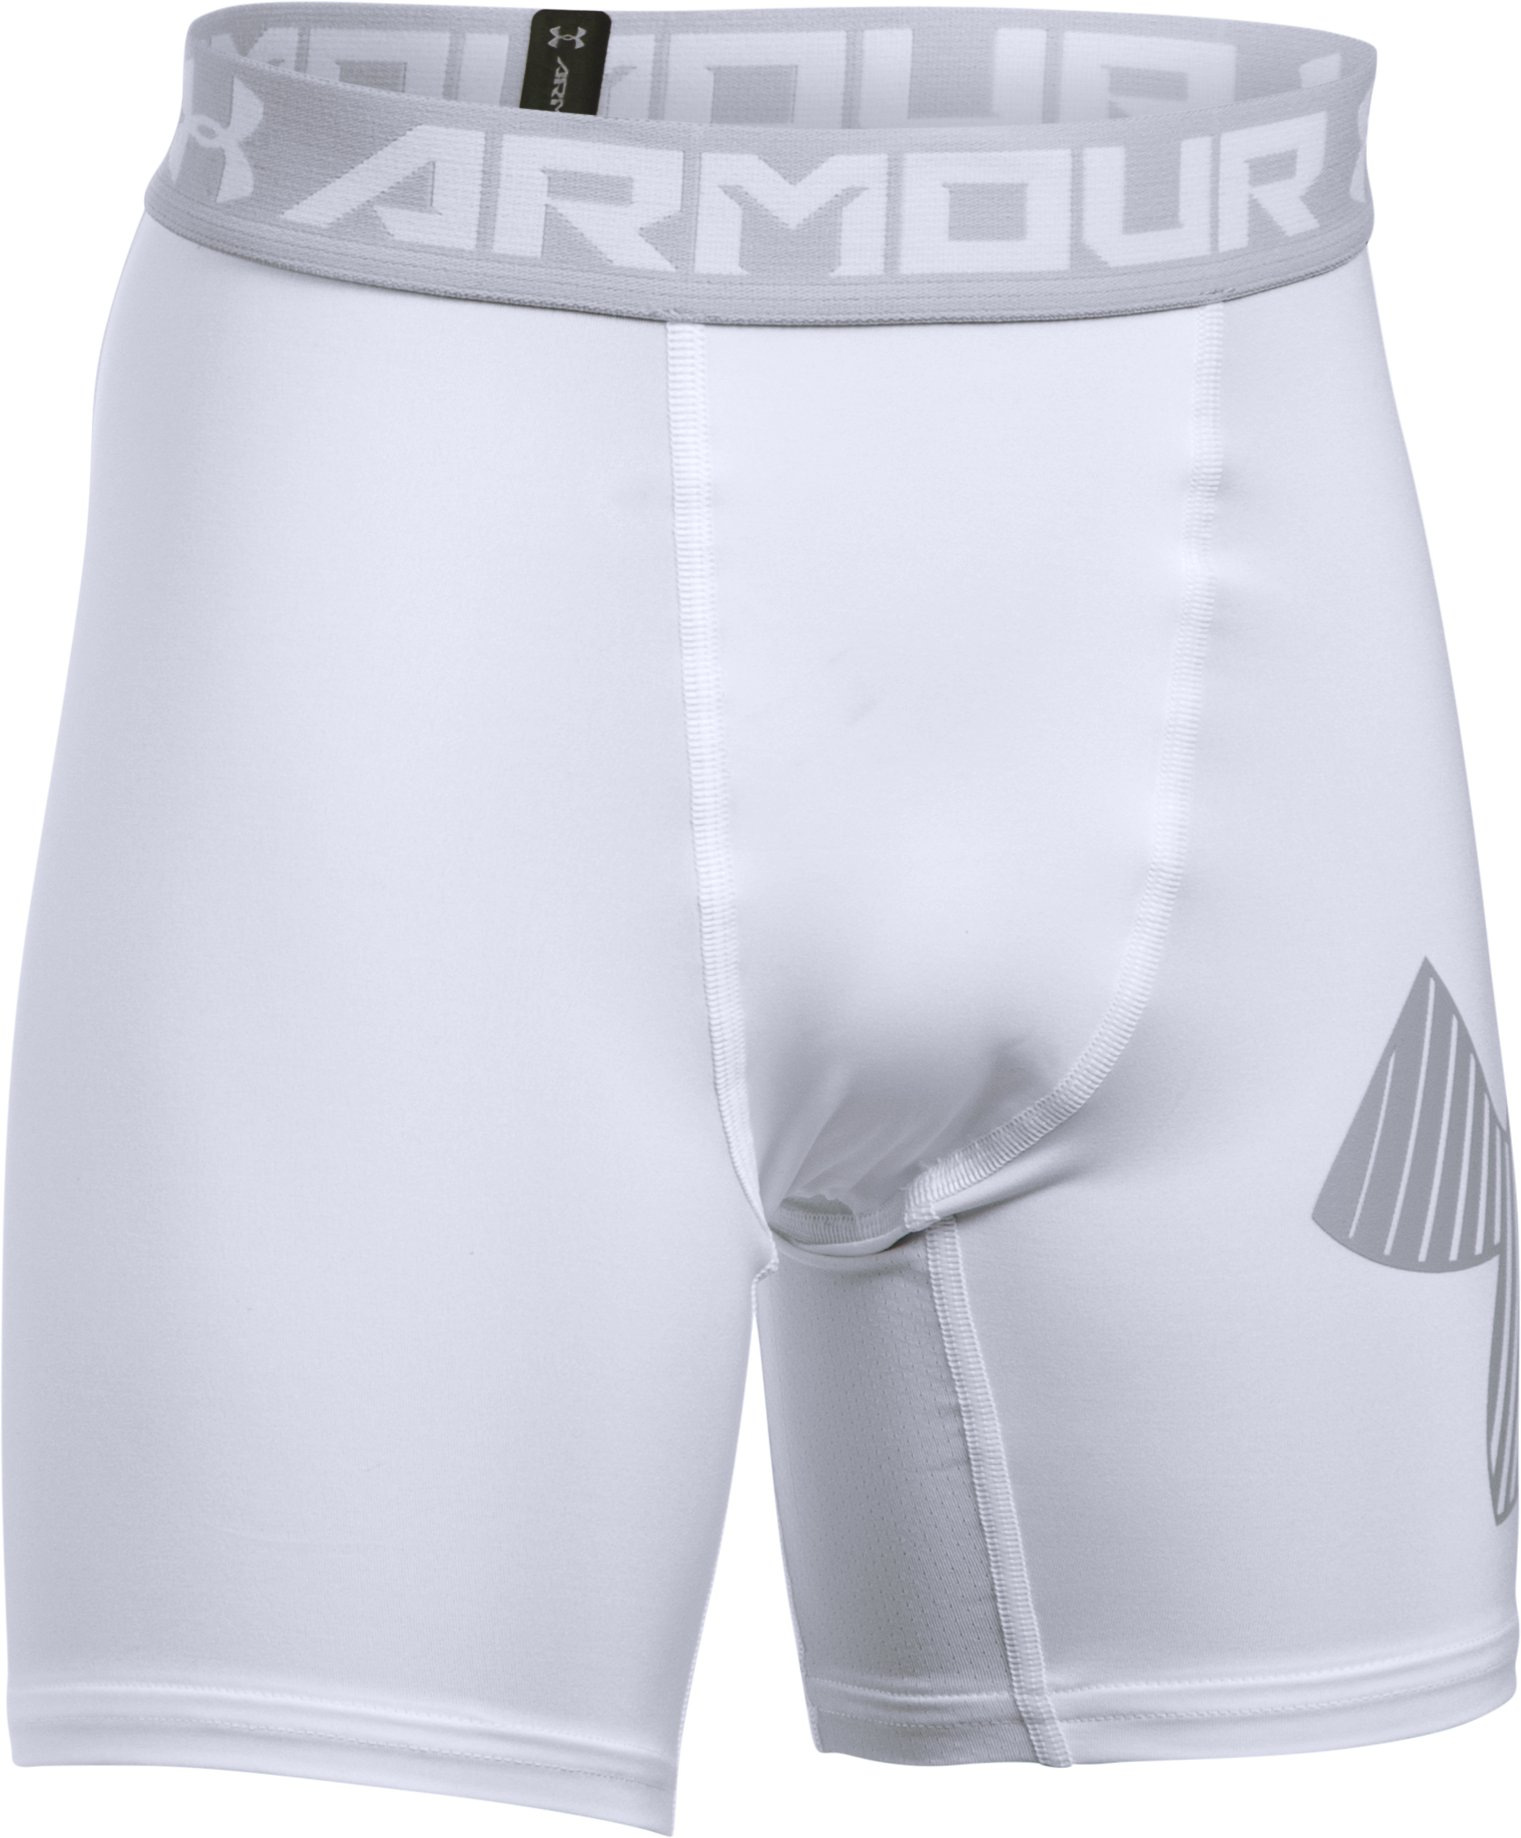 Boys' HeatGear® Armour Mid Shorts, White, undefined